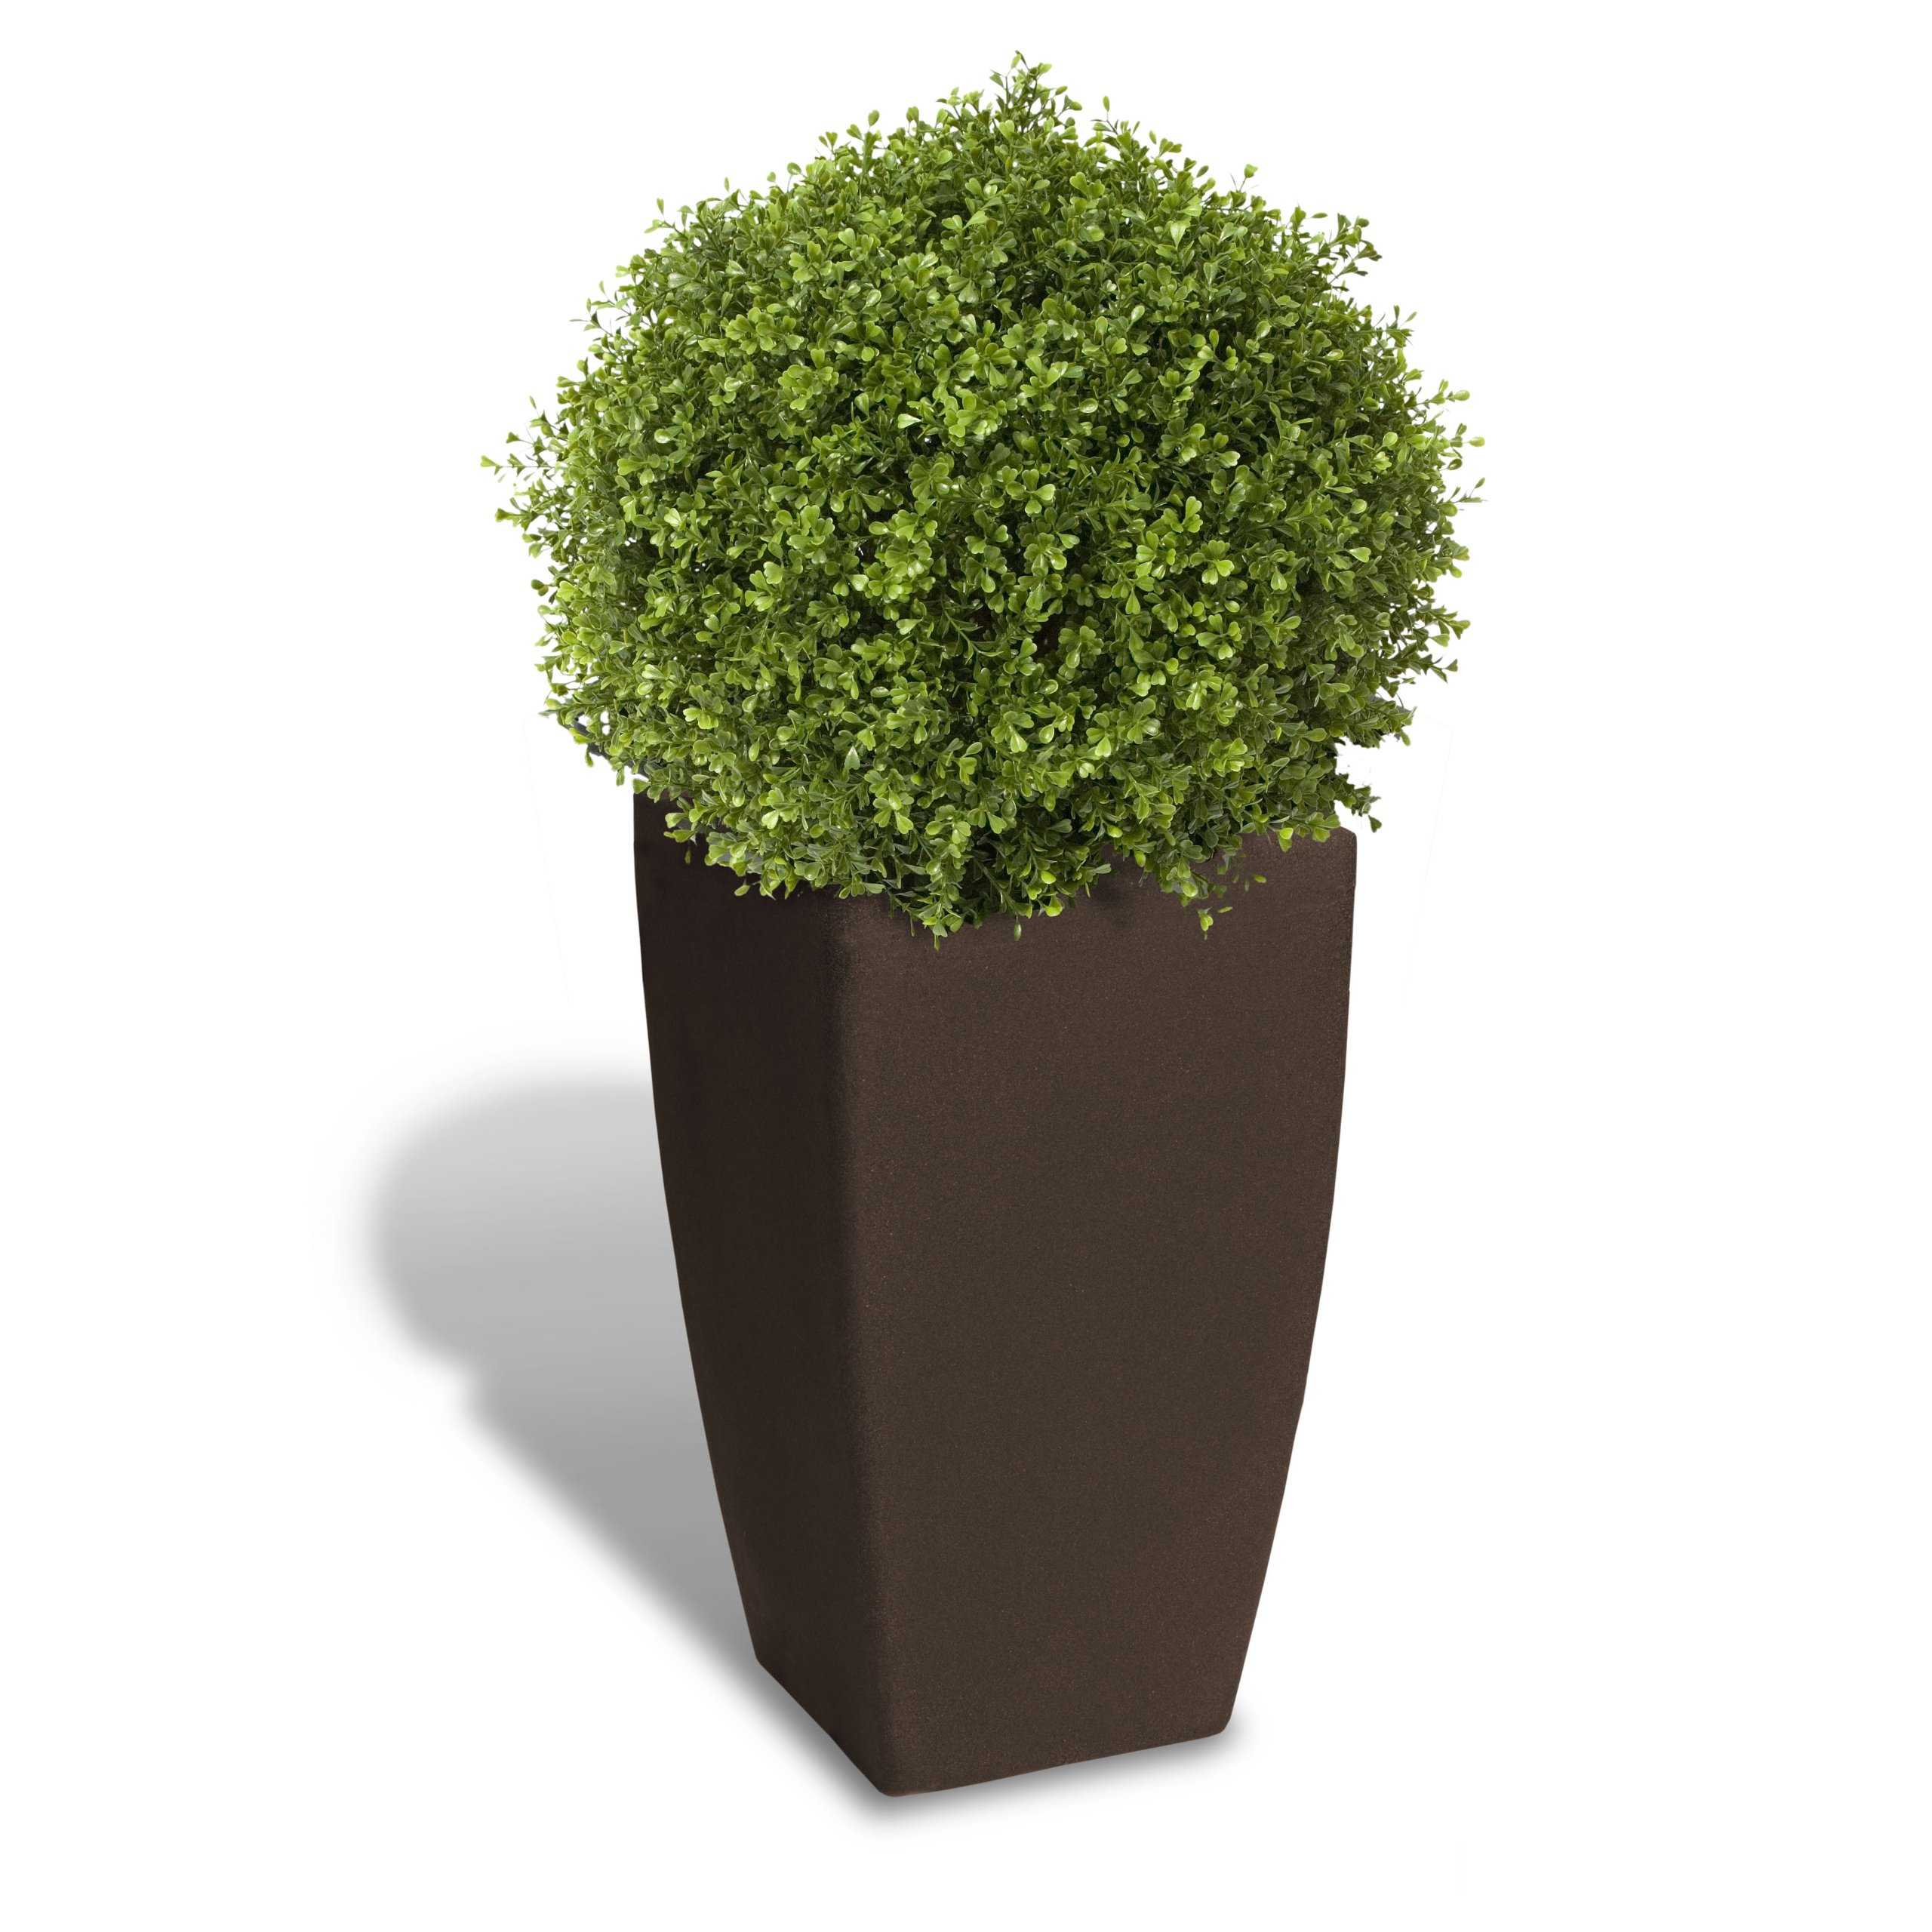 Algreen Products Madison Planter, Large, 20'' L x 20'' W x 34.5'' H, Brownstone by Algreen